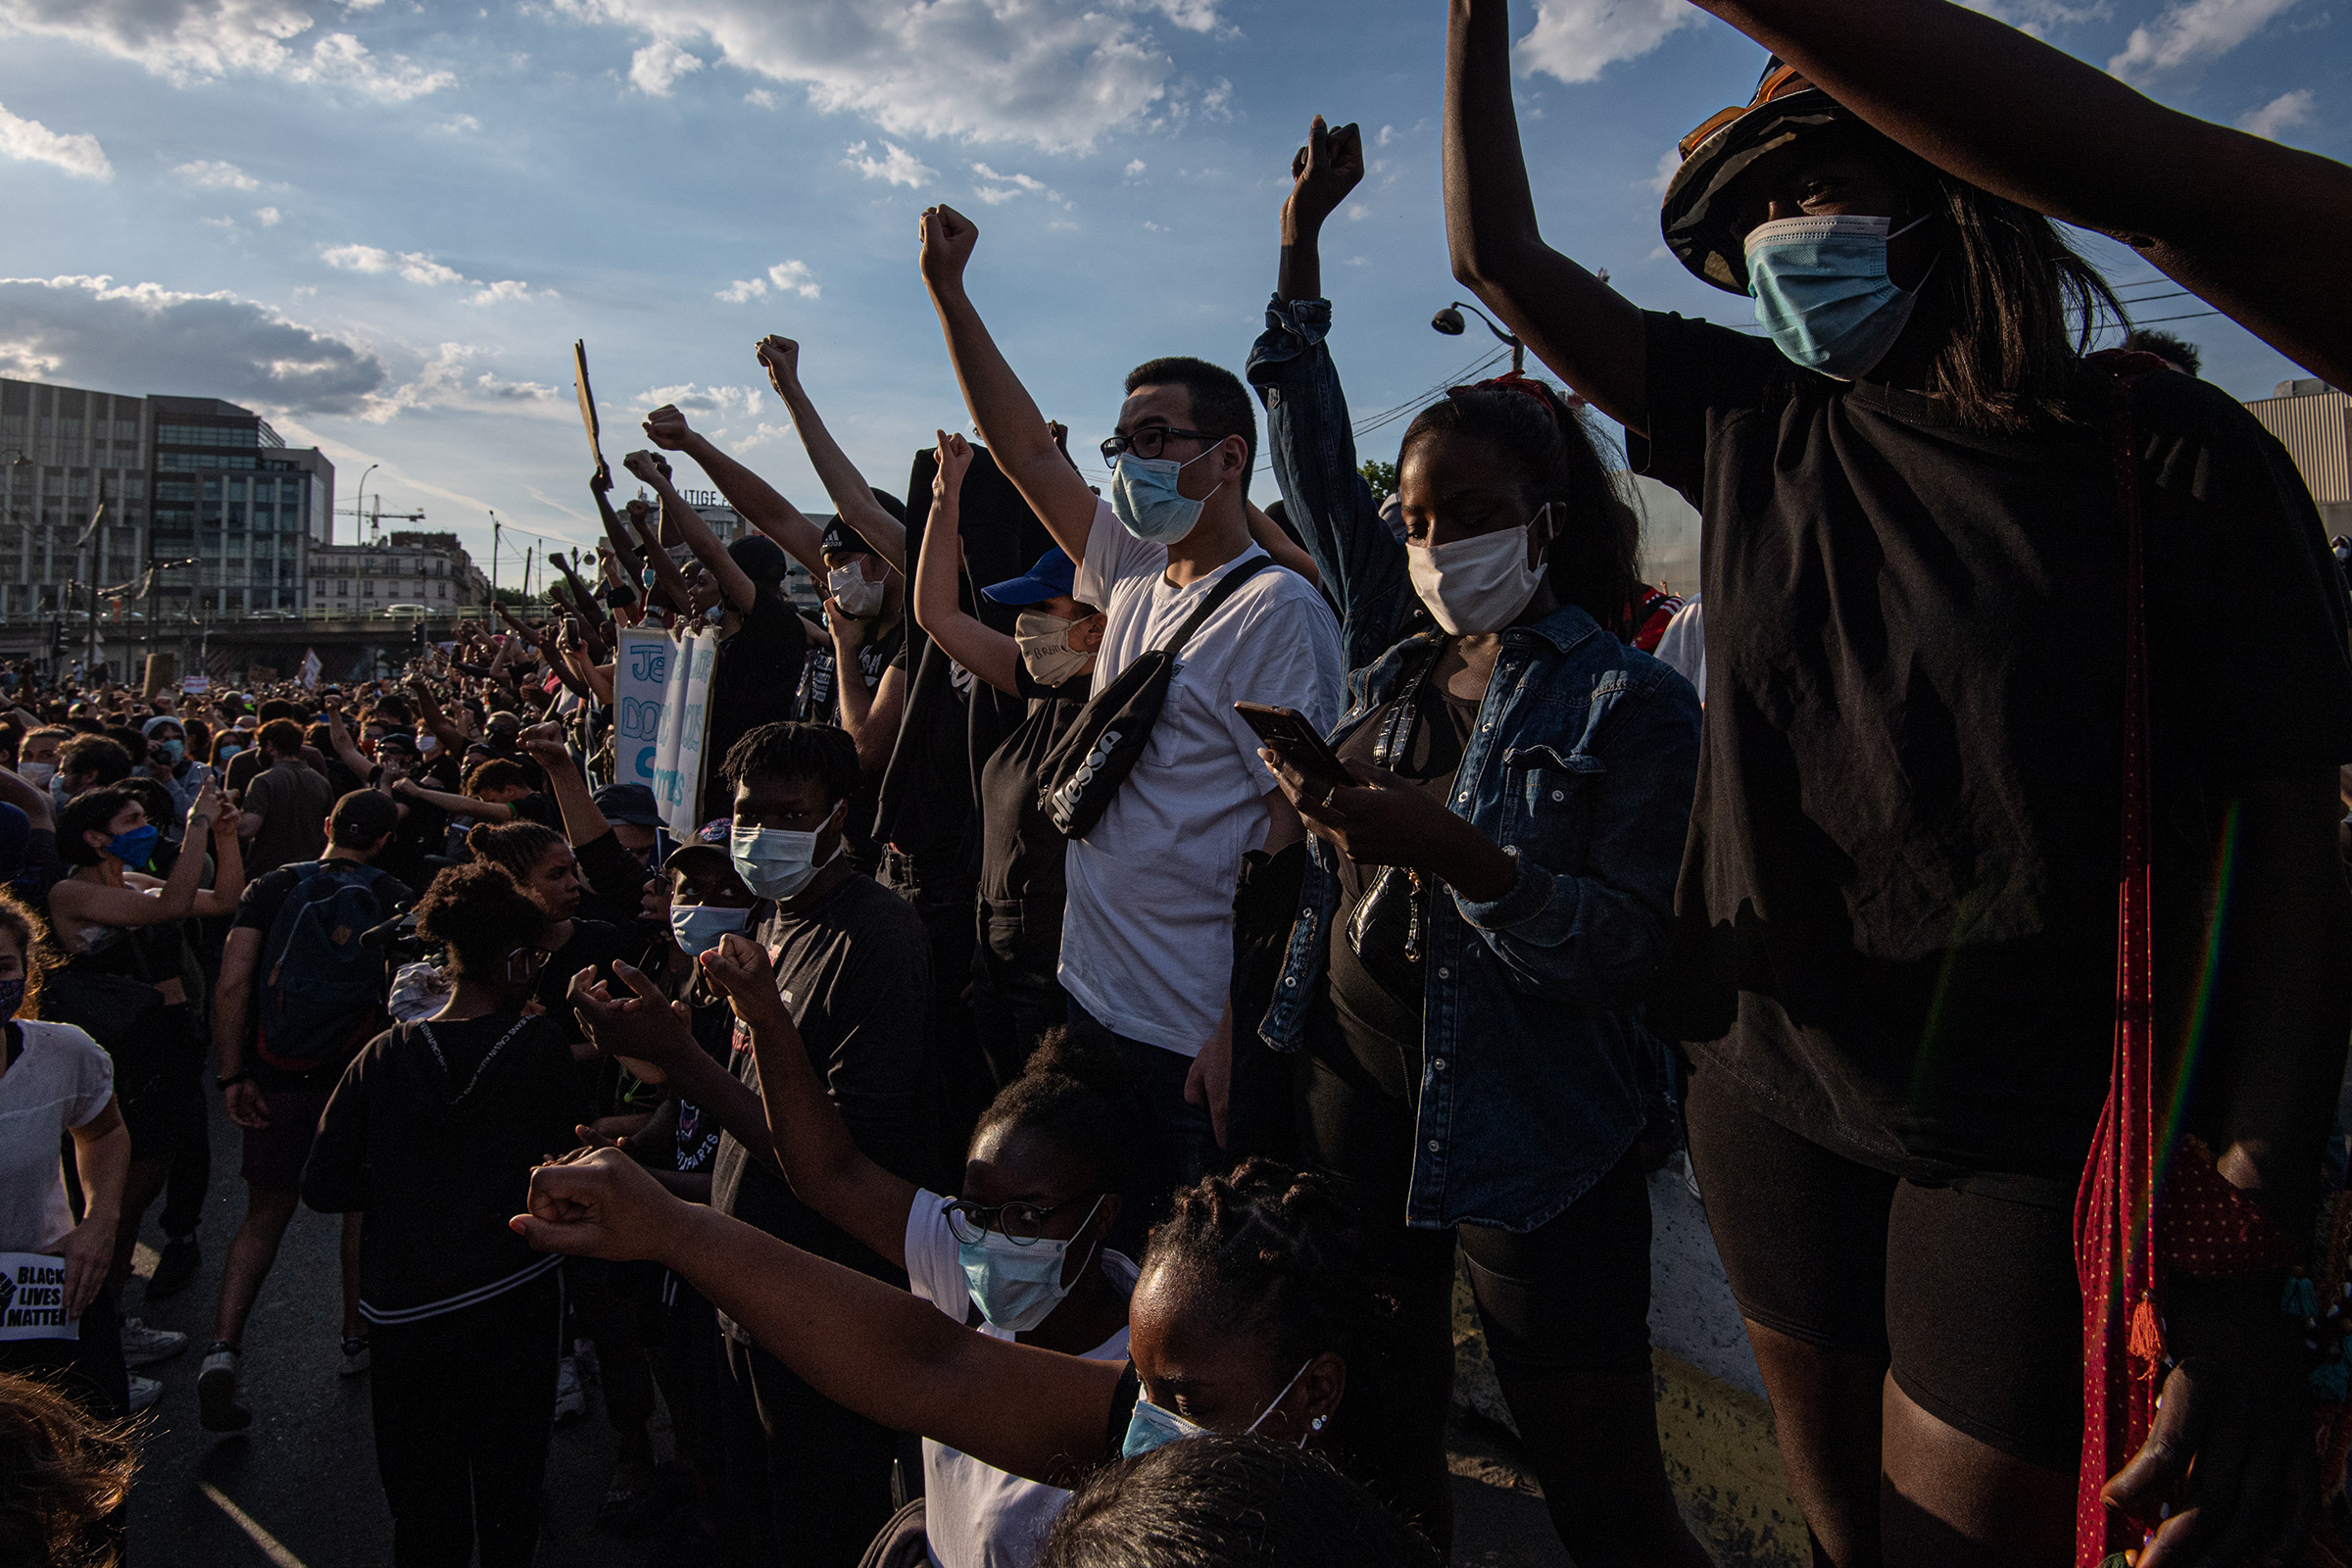 Demonstrators protest against police brutality at the  Tribunal de Paris  courthouse on June 2 in Paris. Thousands of people gathered to protest against racism and police brutality despite a police order that the protest not proceed due to coronavirus (COVID-19) restrictions.